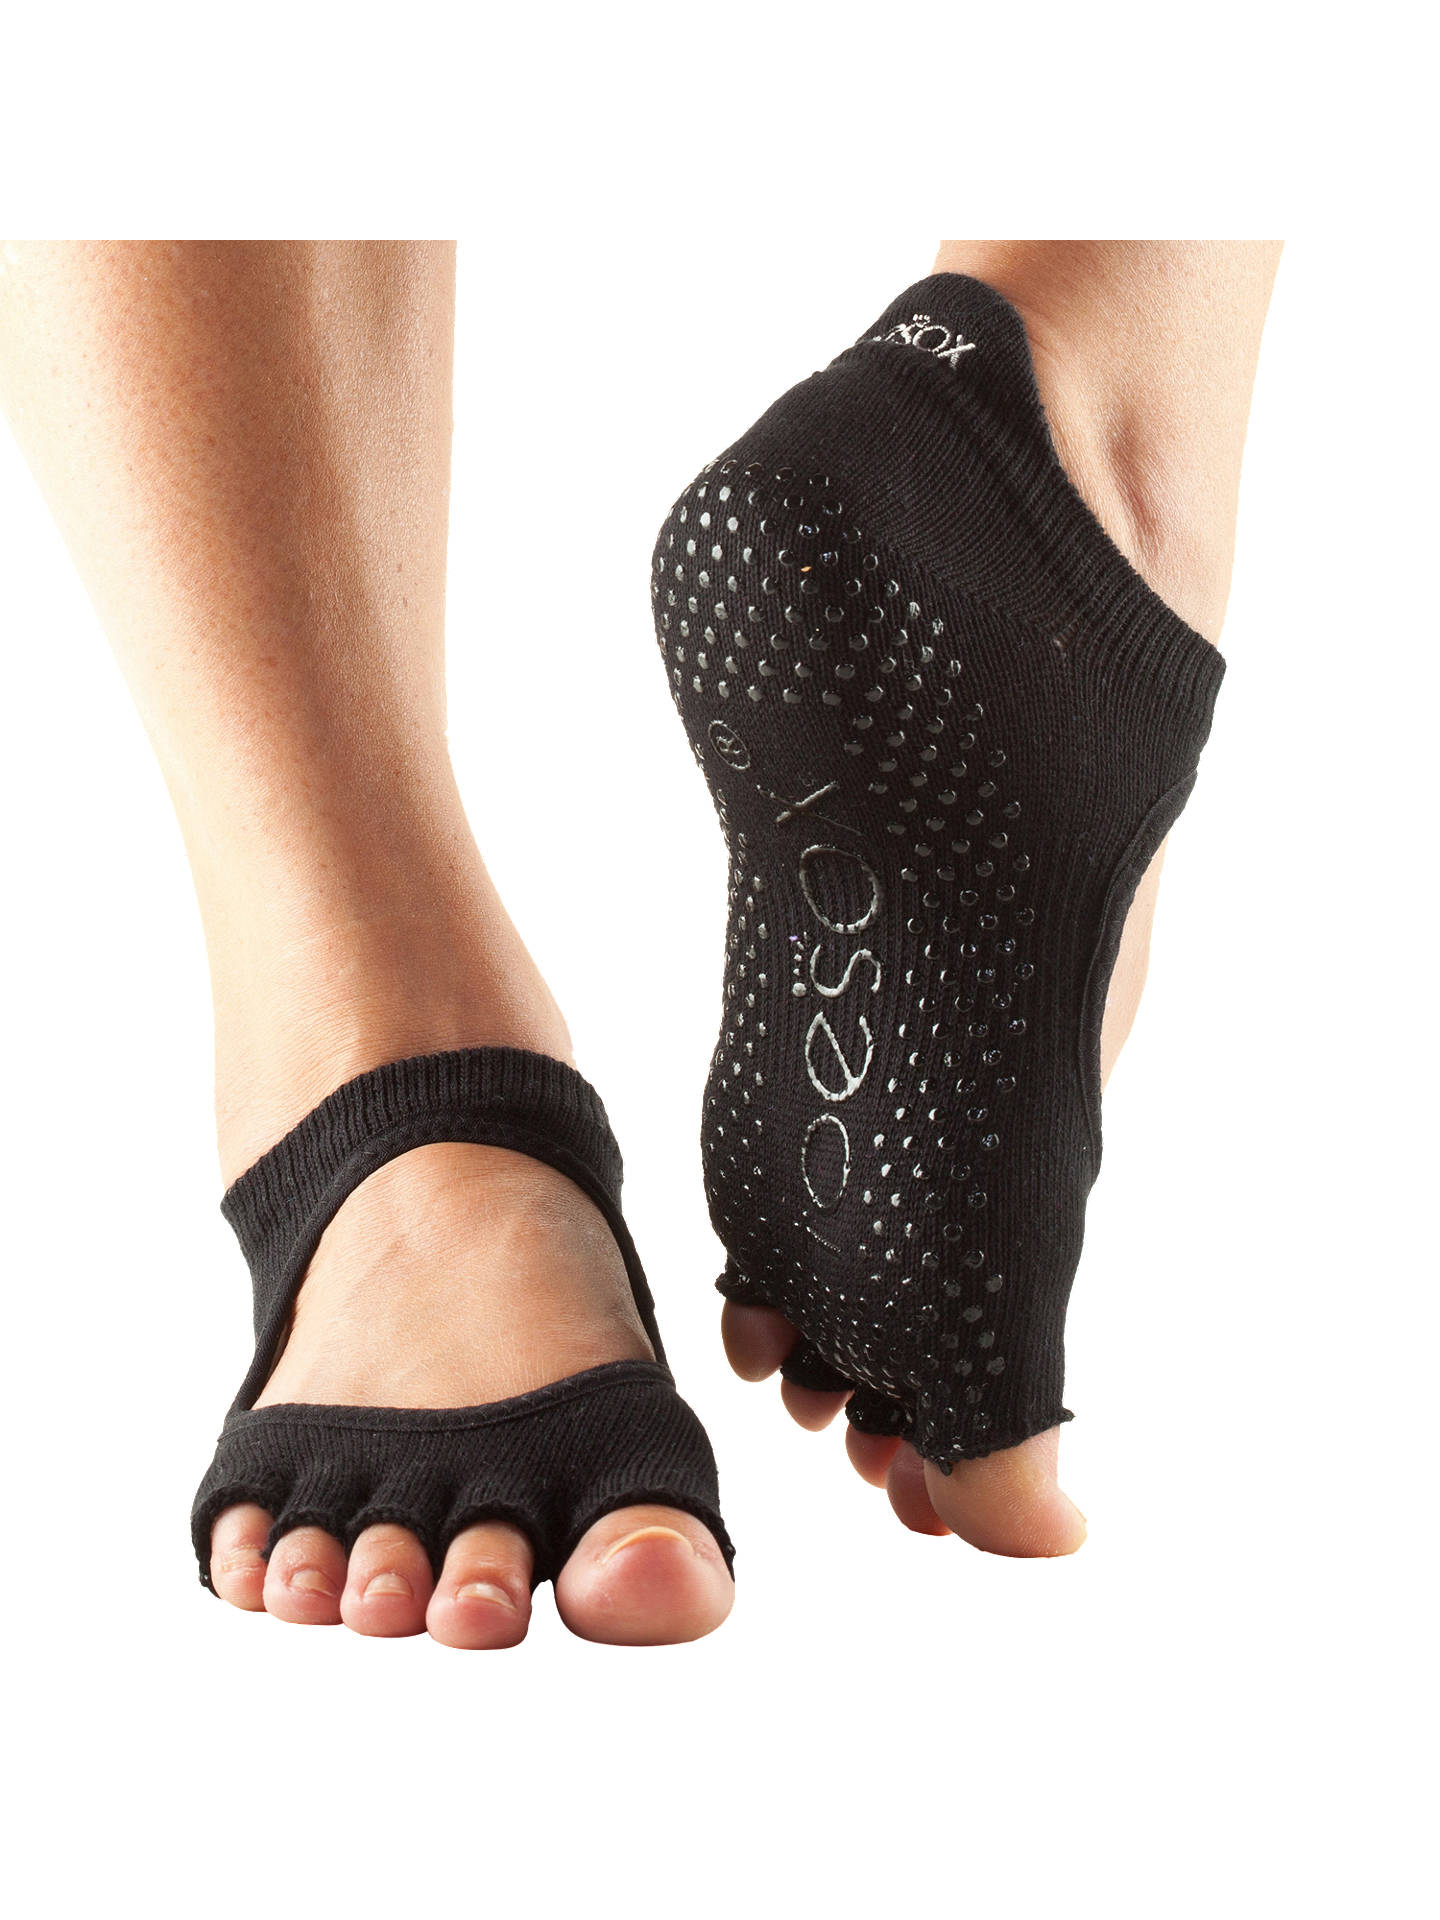 BuyBellarina Half Toe Barre Toesox, Black, S Online at johnlewis.com